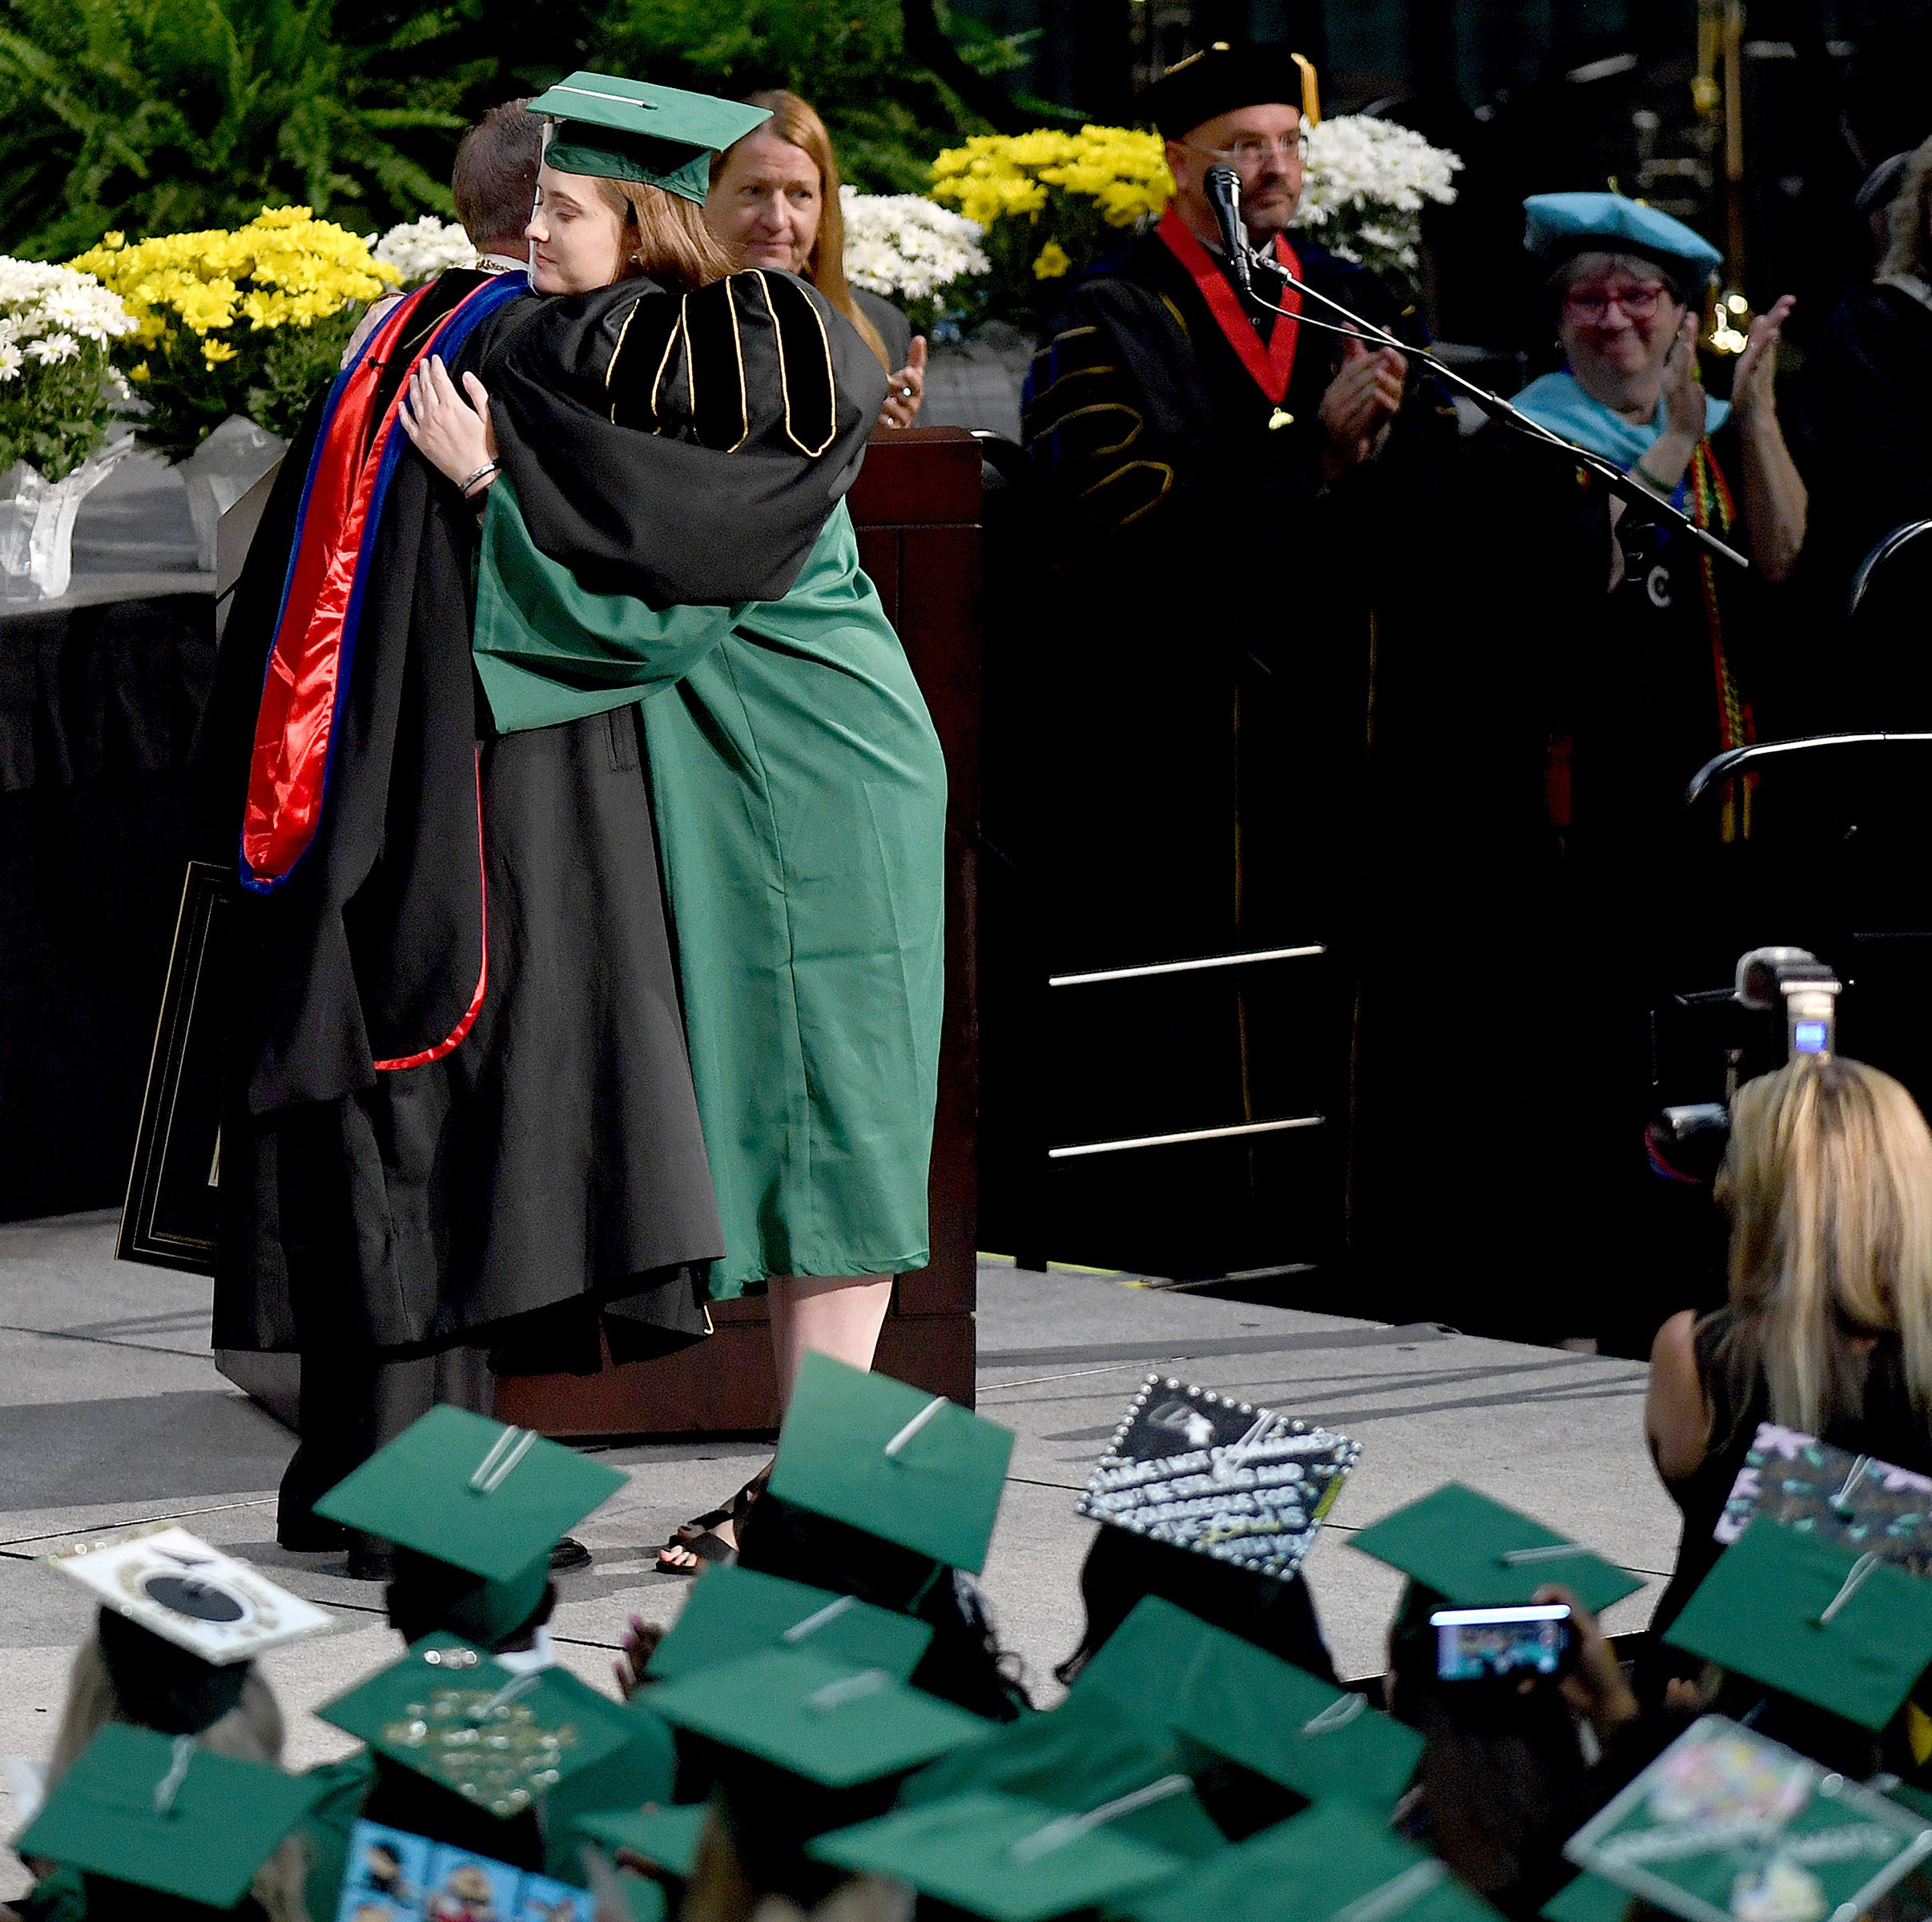 UNCC victim receives degree 11 days after shooting, slain students honored at commencement